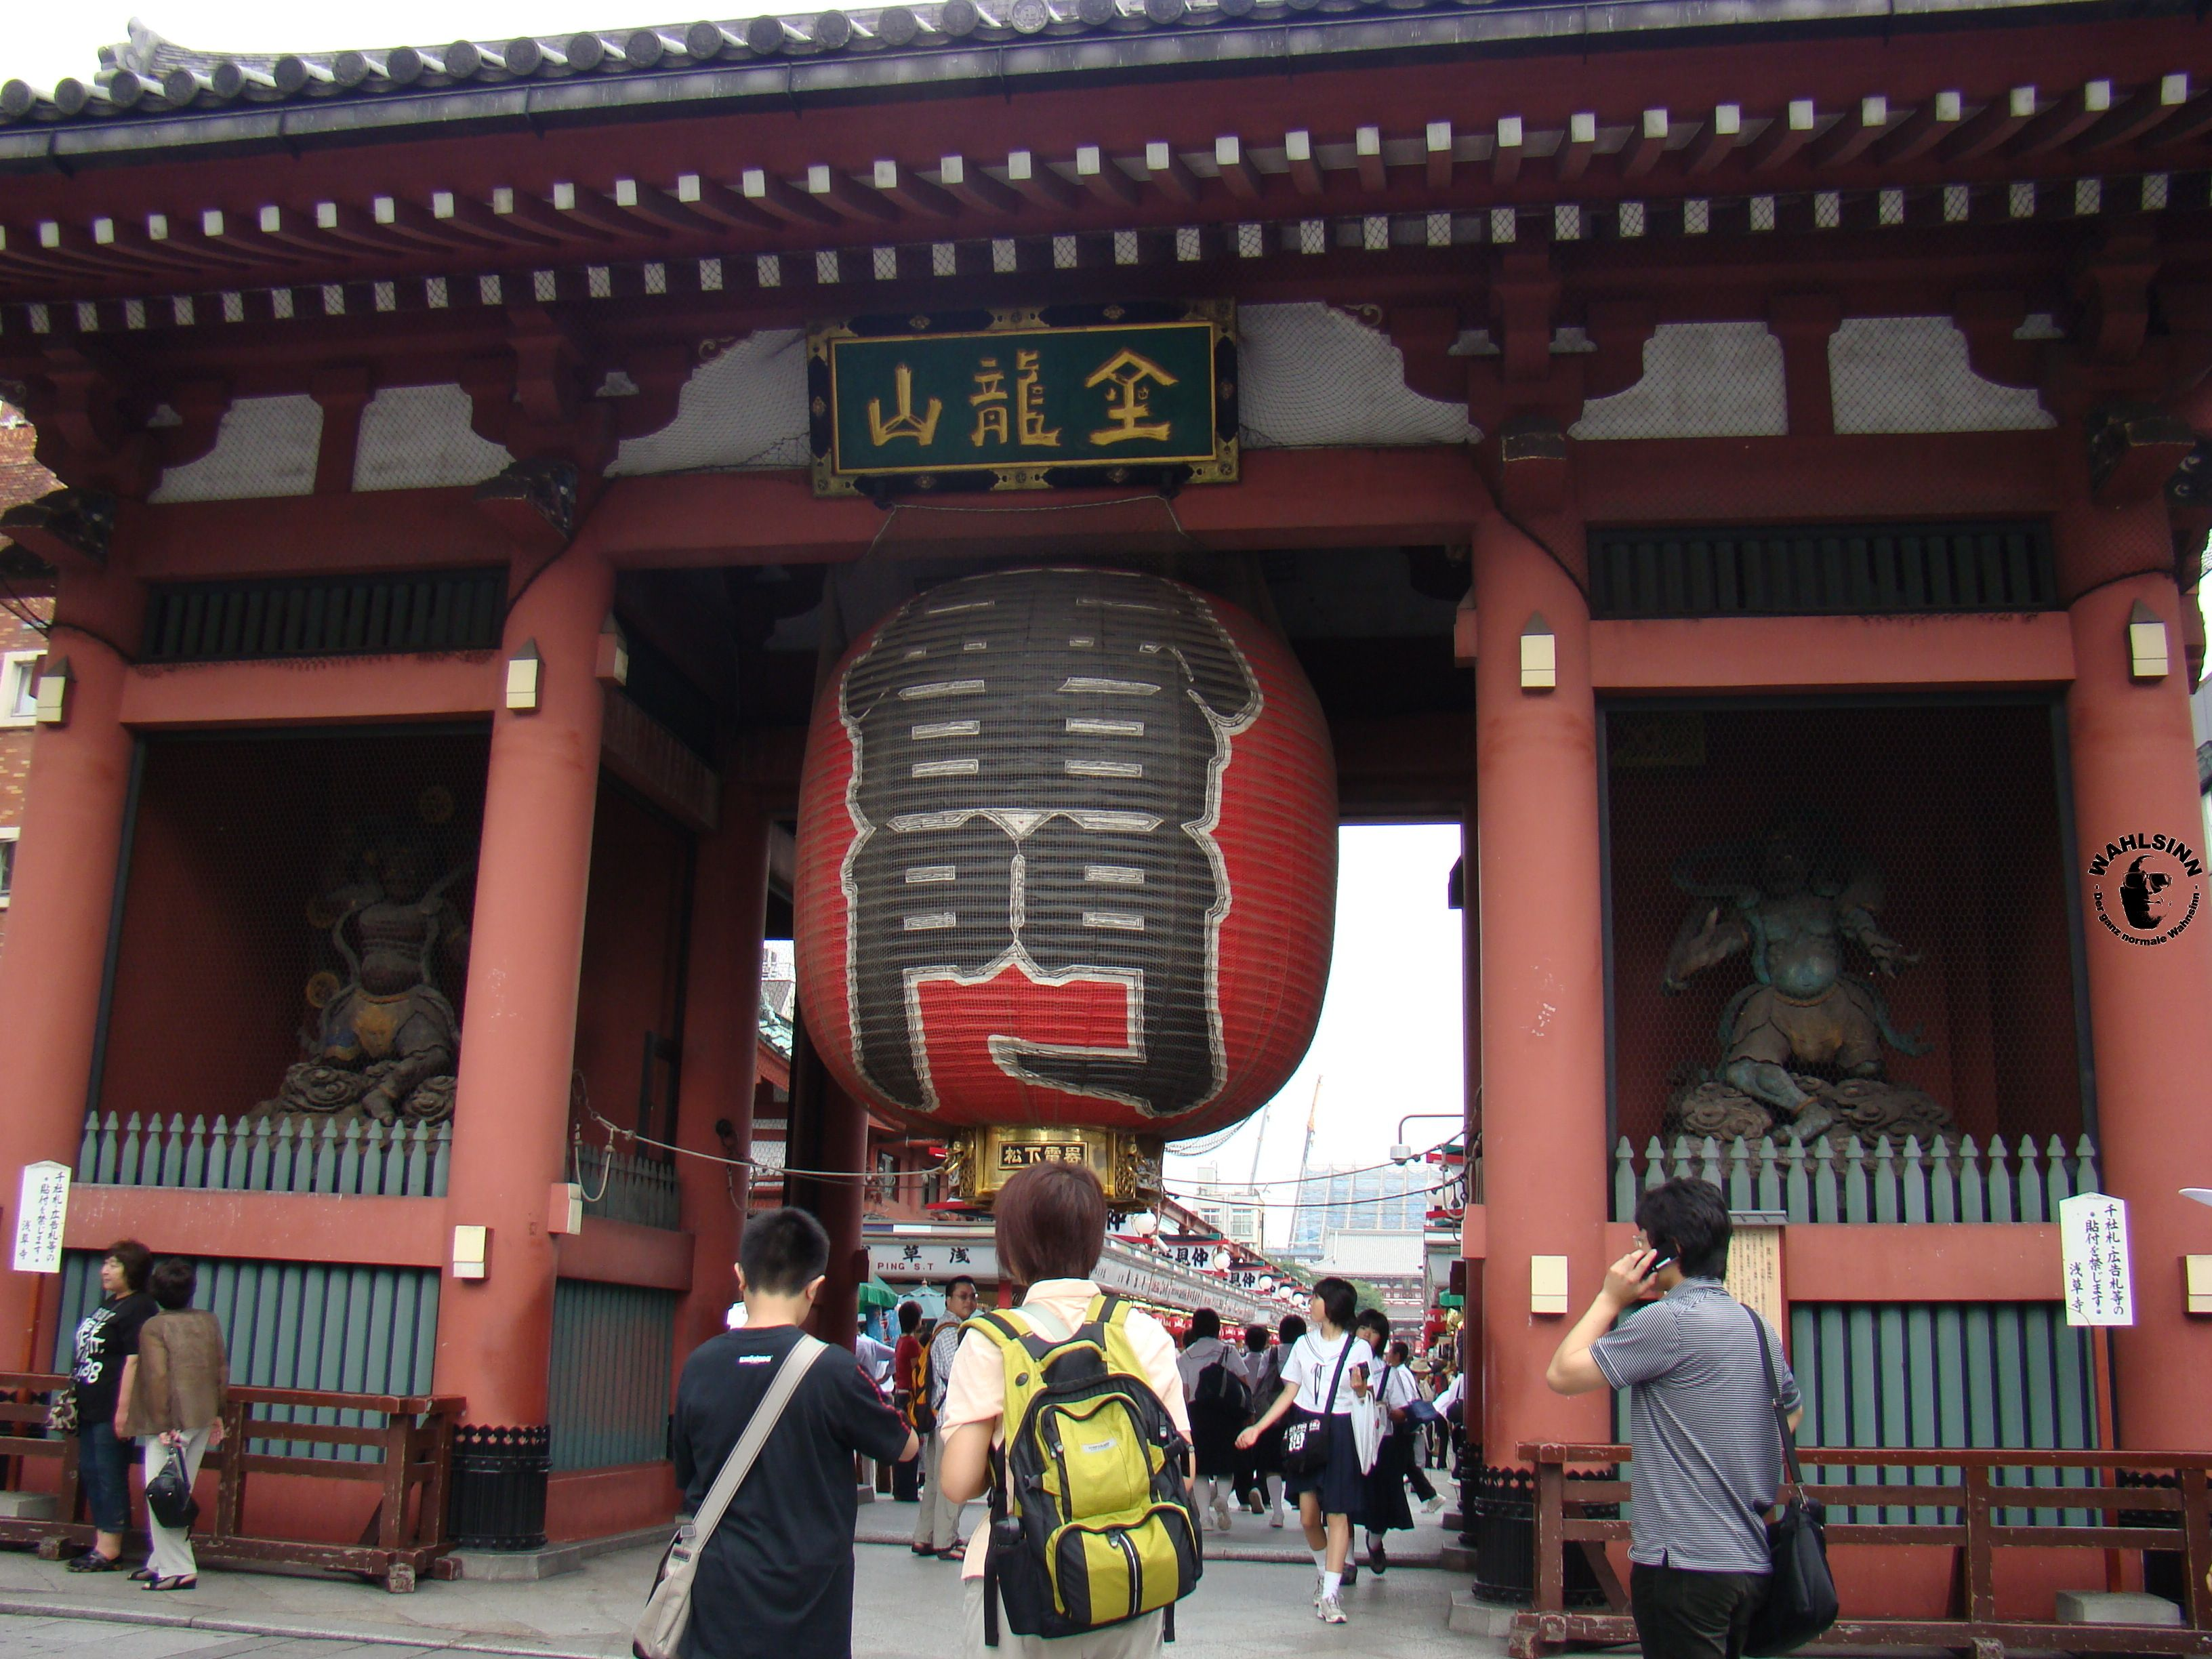 Japan // Tokio - Kaminarimon Gate